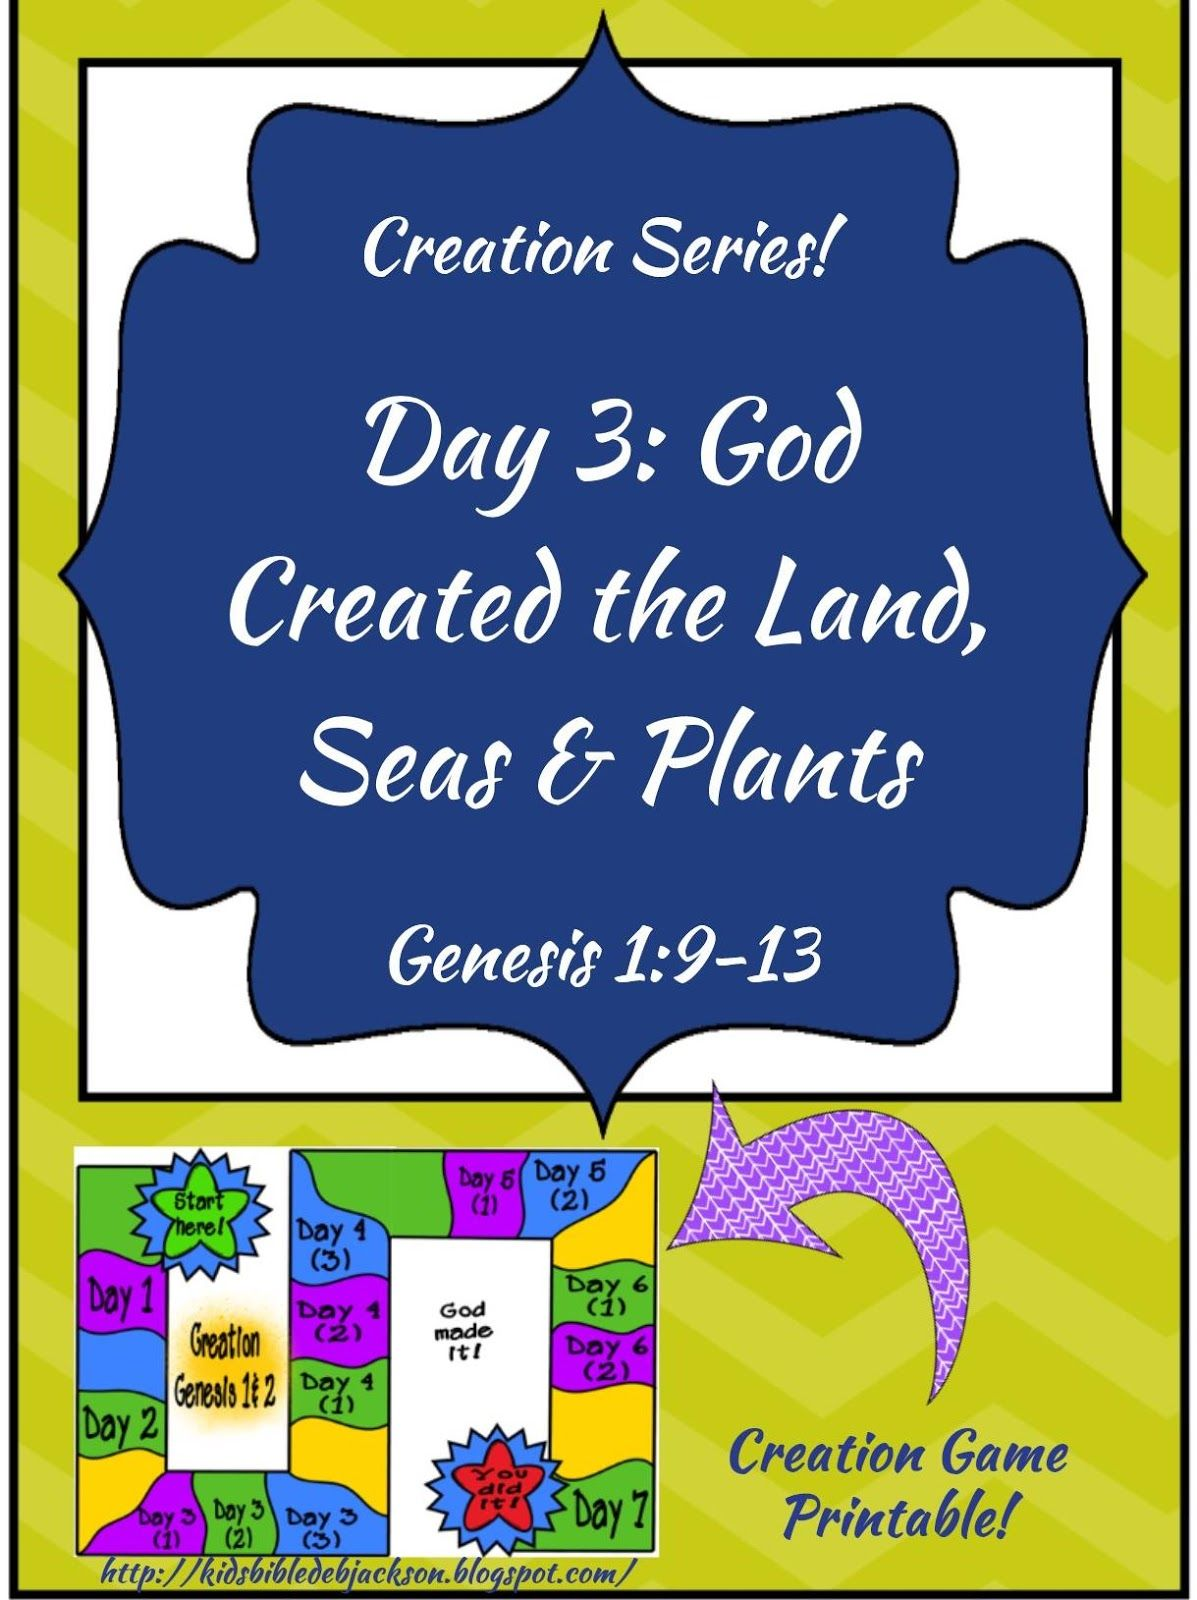 The Creation For Kids Day 3 With Free Game Printable